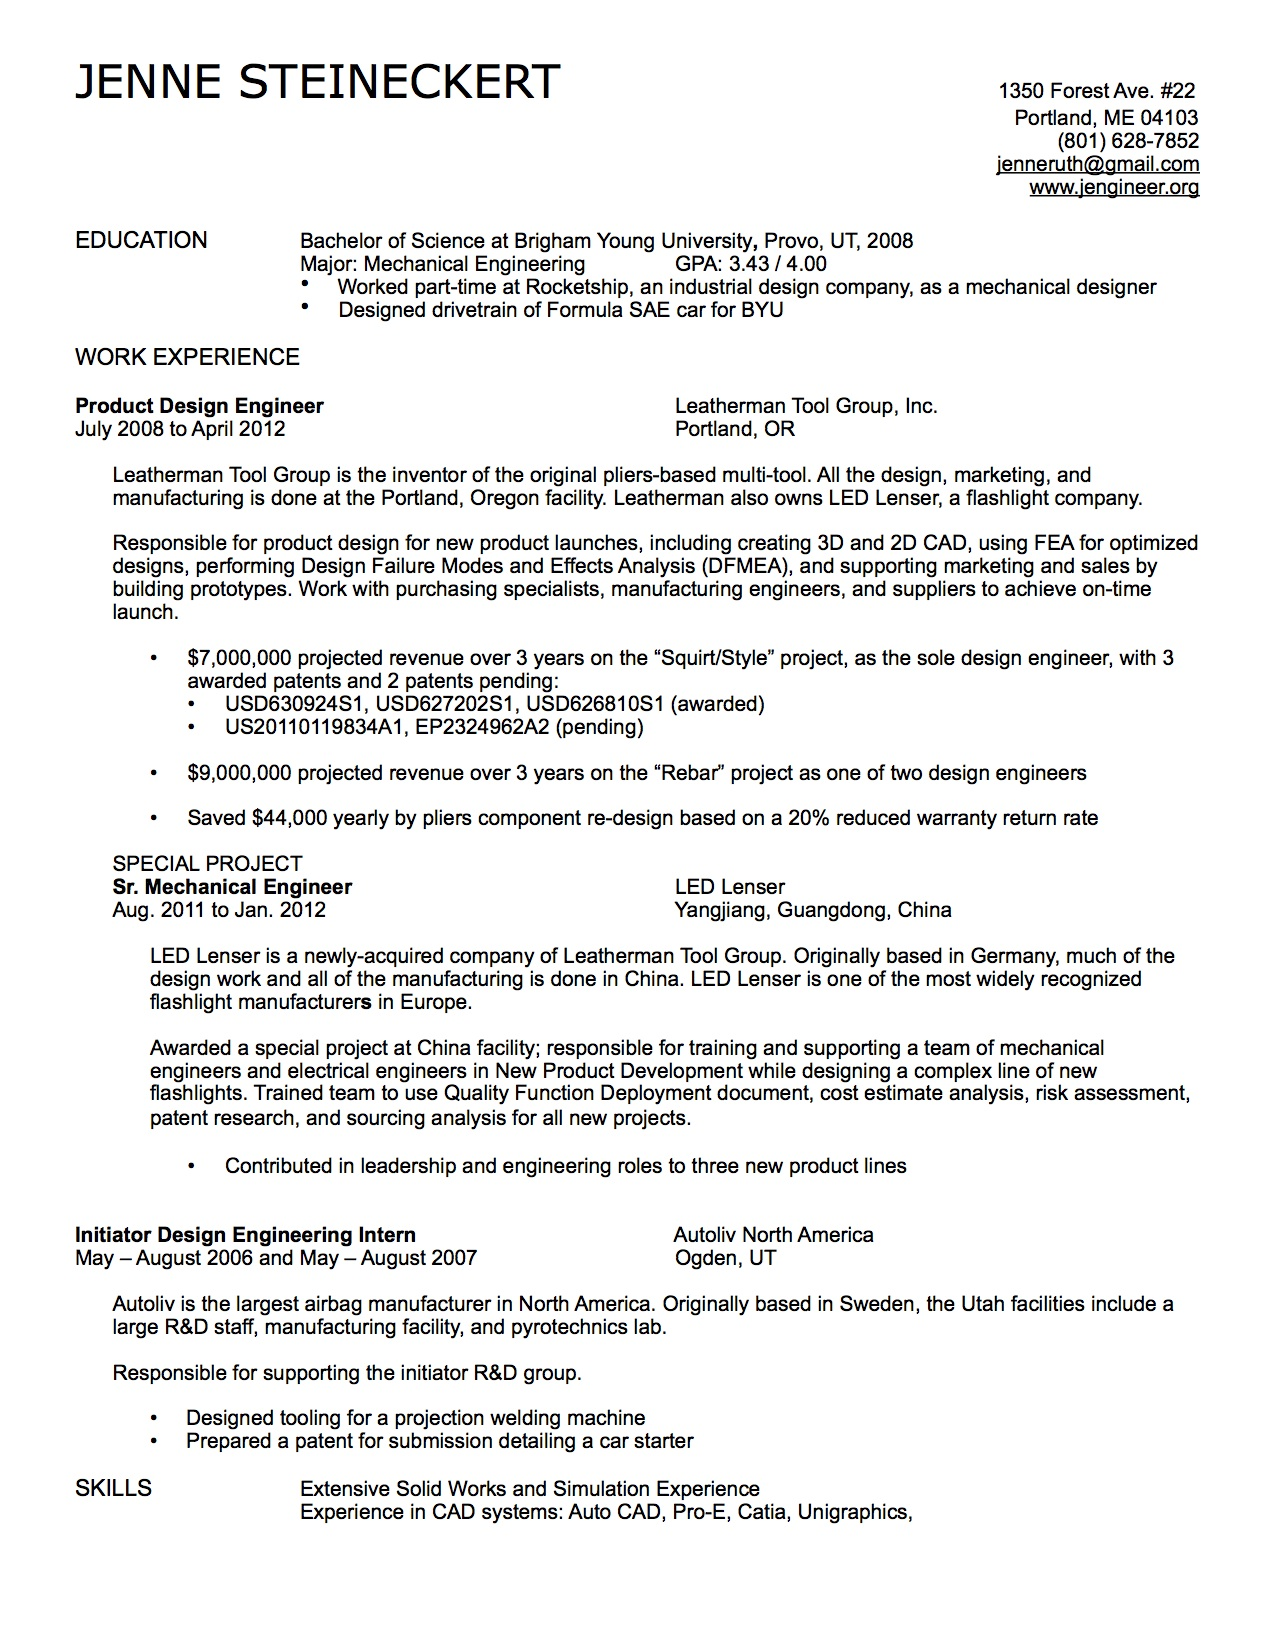 references section of resumes